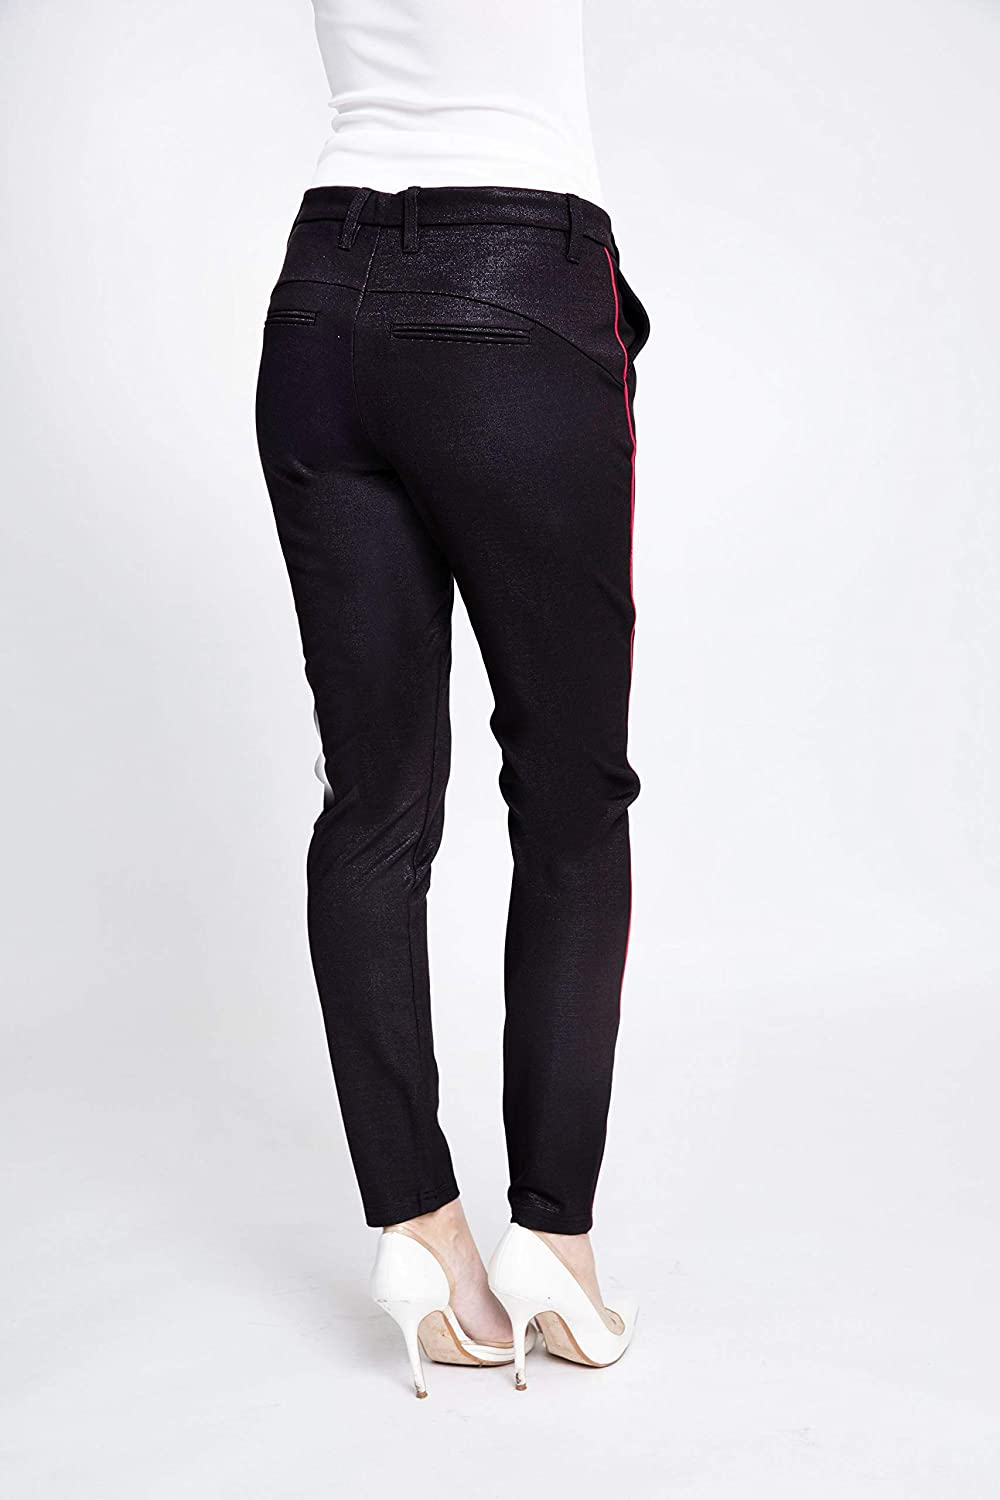 Zhrill Women's Trousers * One Size N9300 - Black